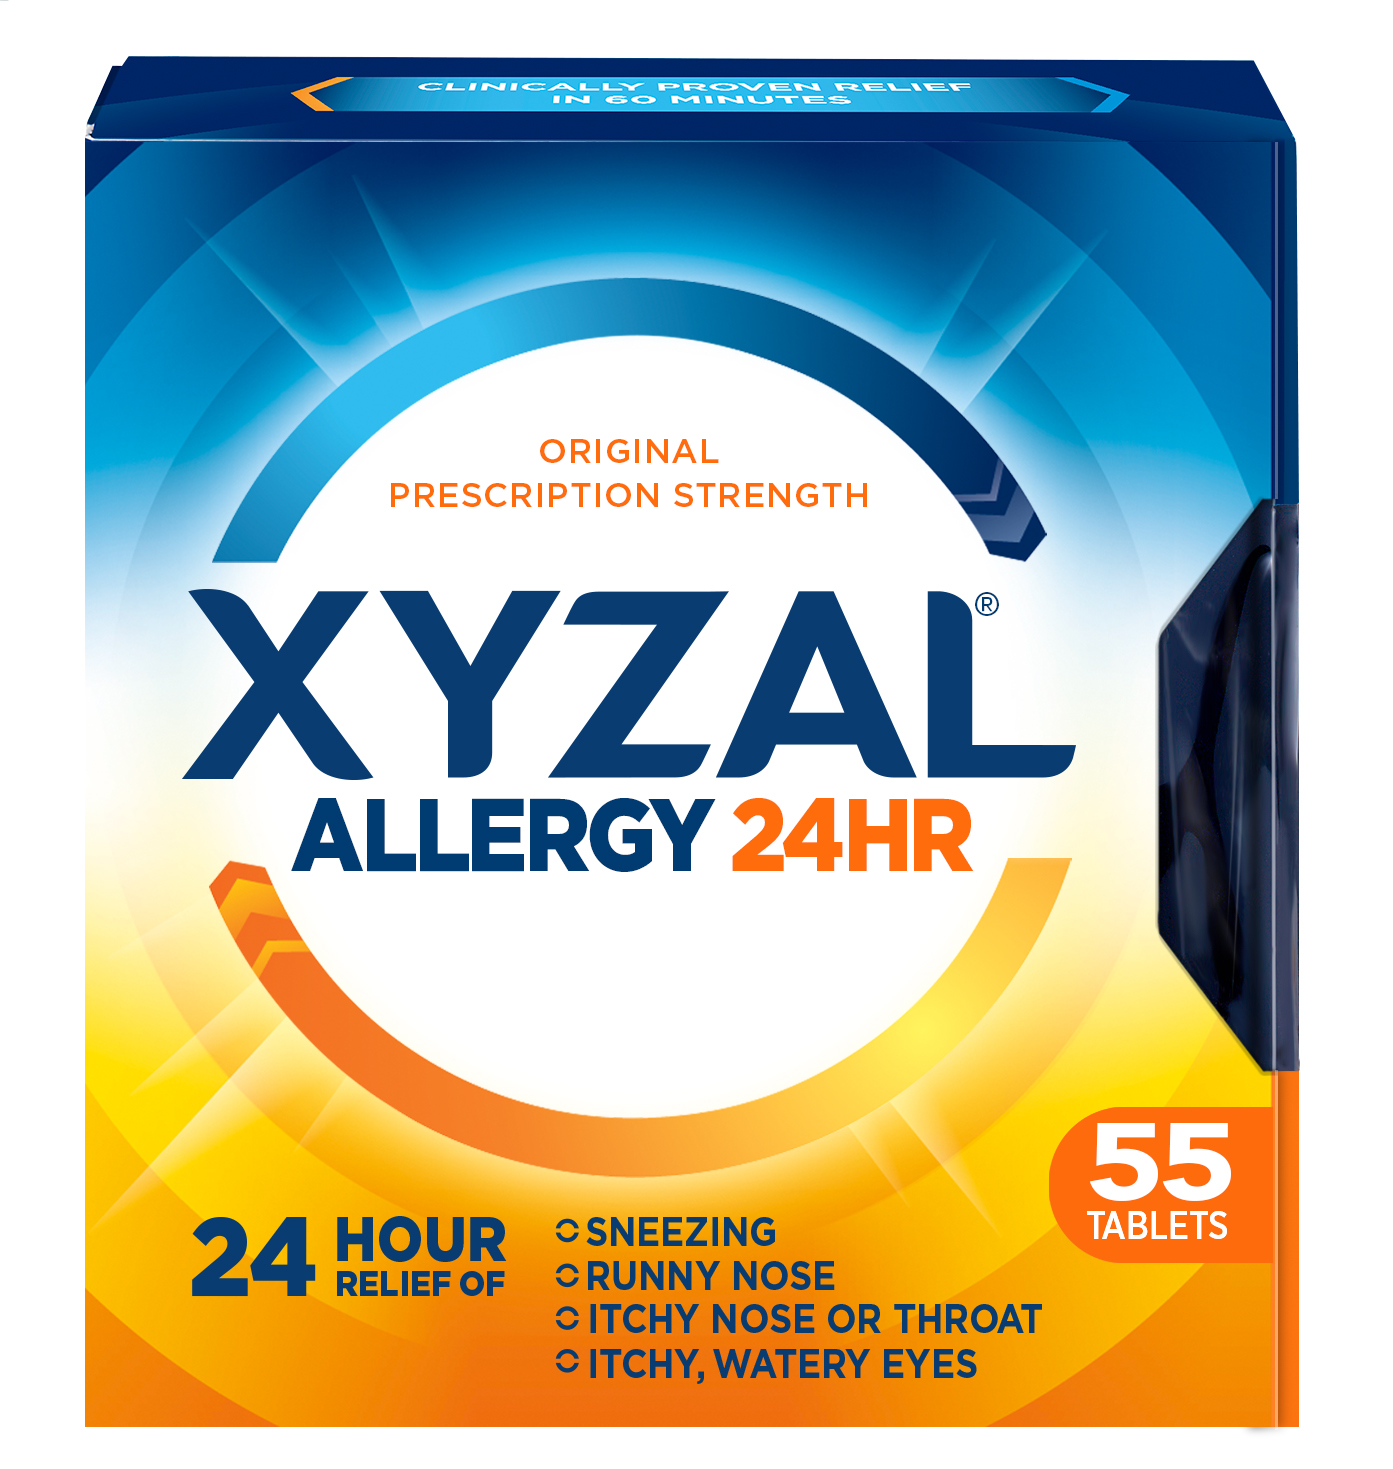 Xyzal 24 Hour Allergy Relief Tablets, 55ct